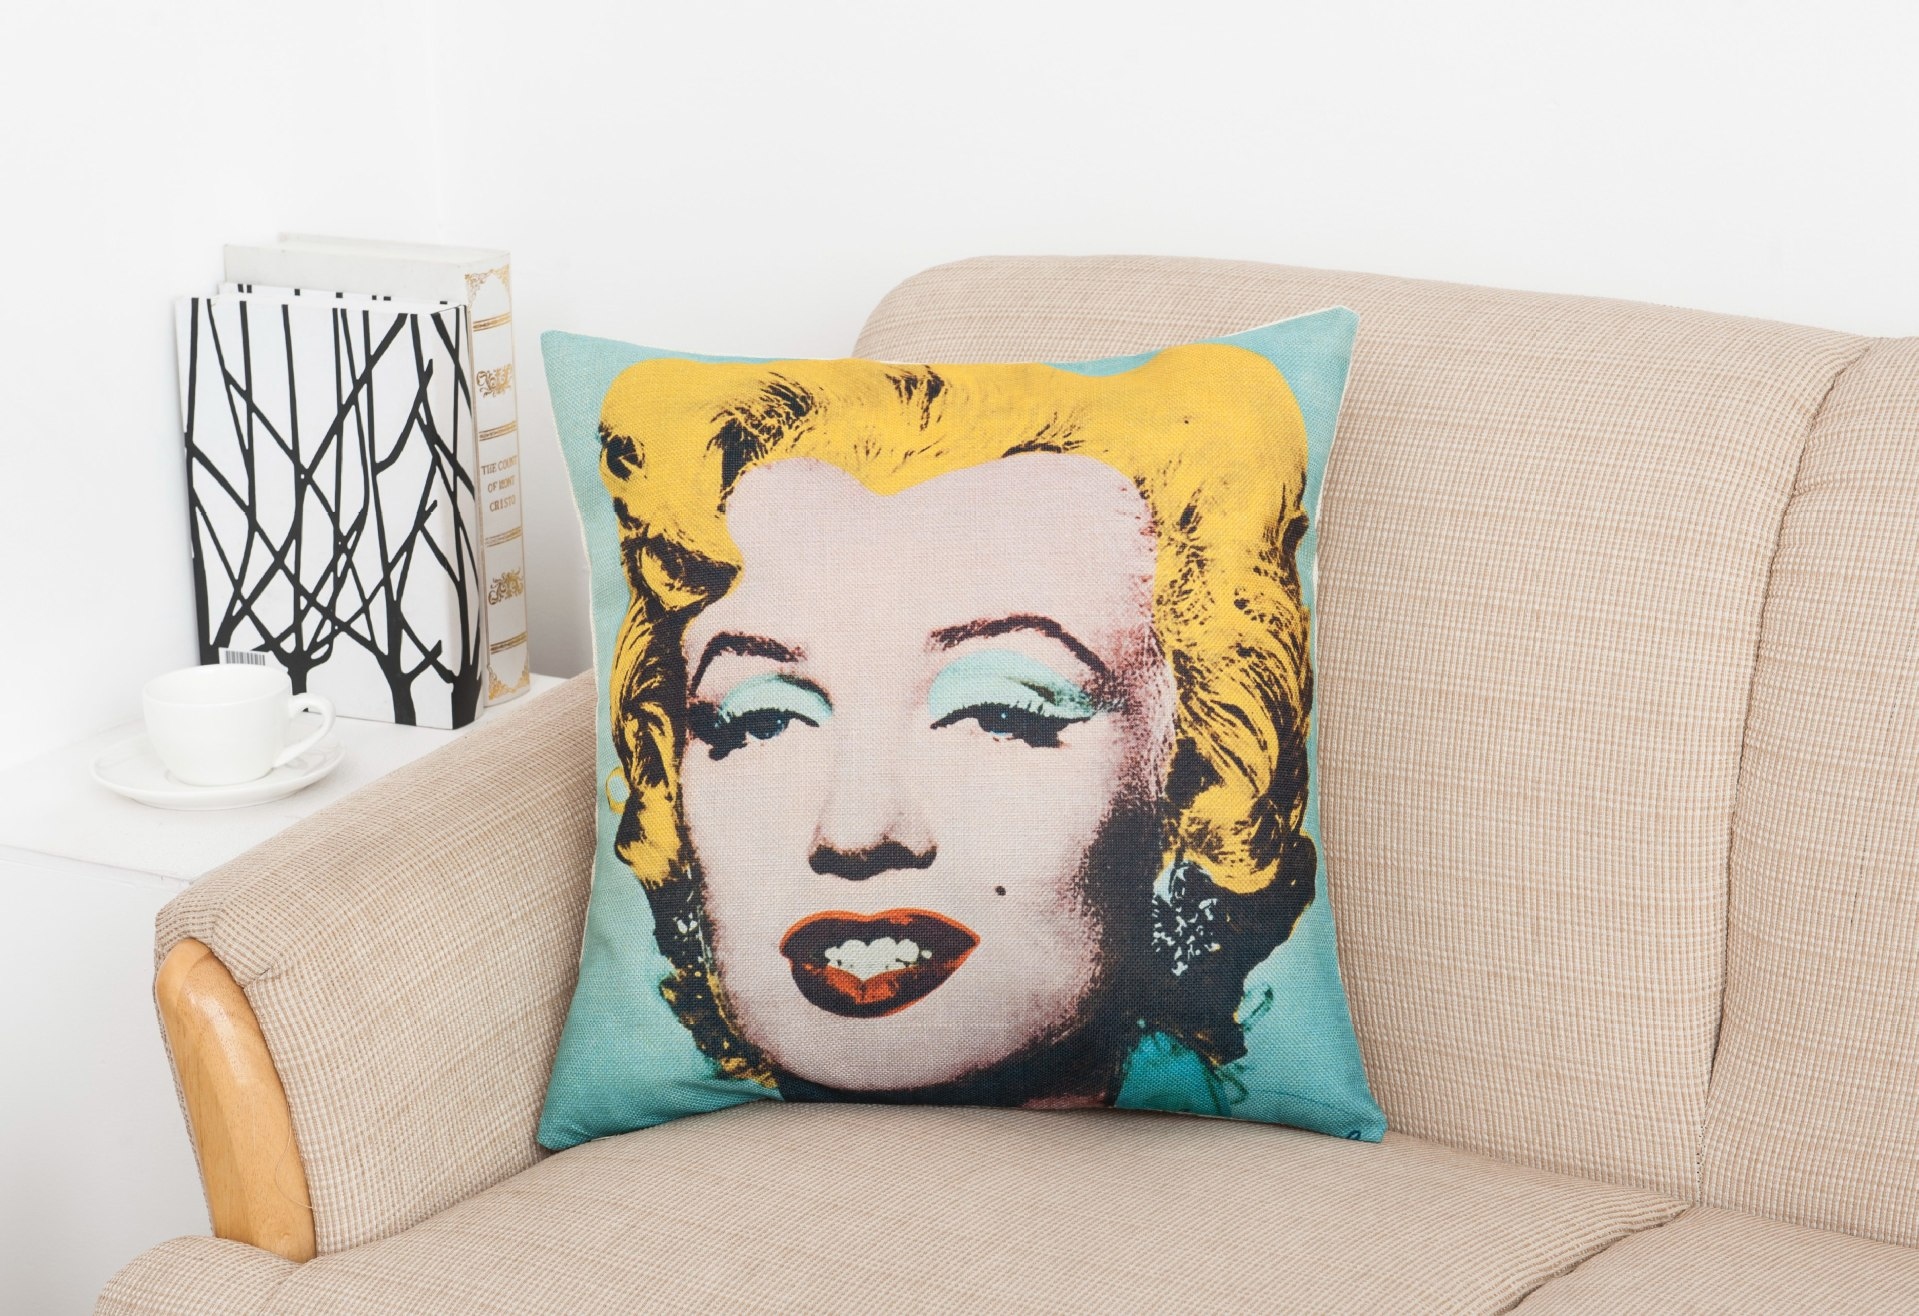 fashionmove polyester marilyn monroe cushion covers classic film